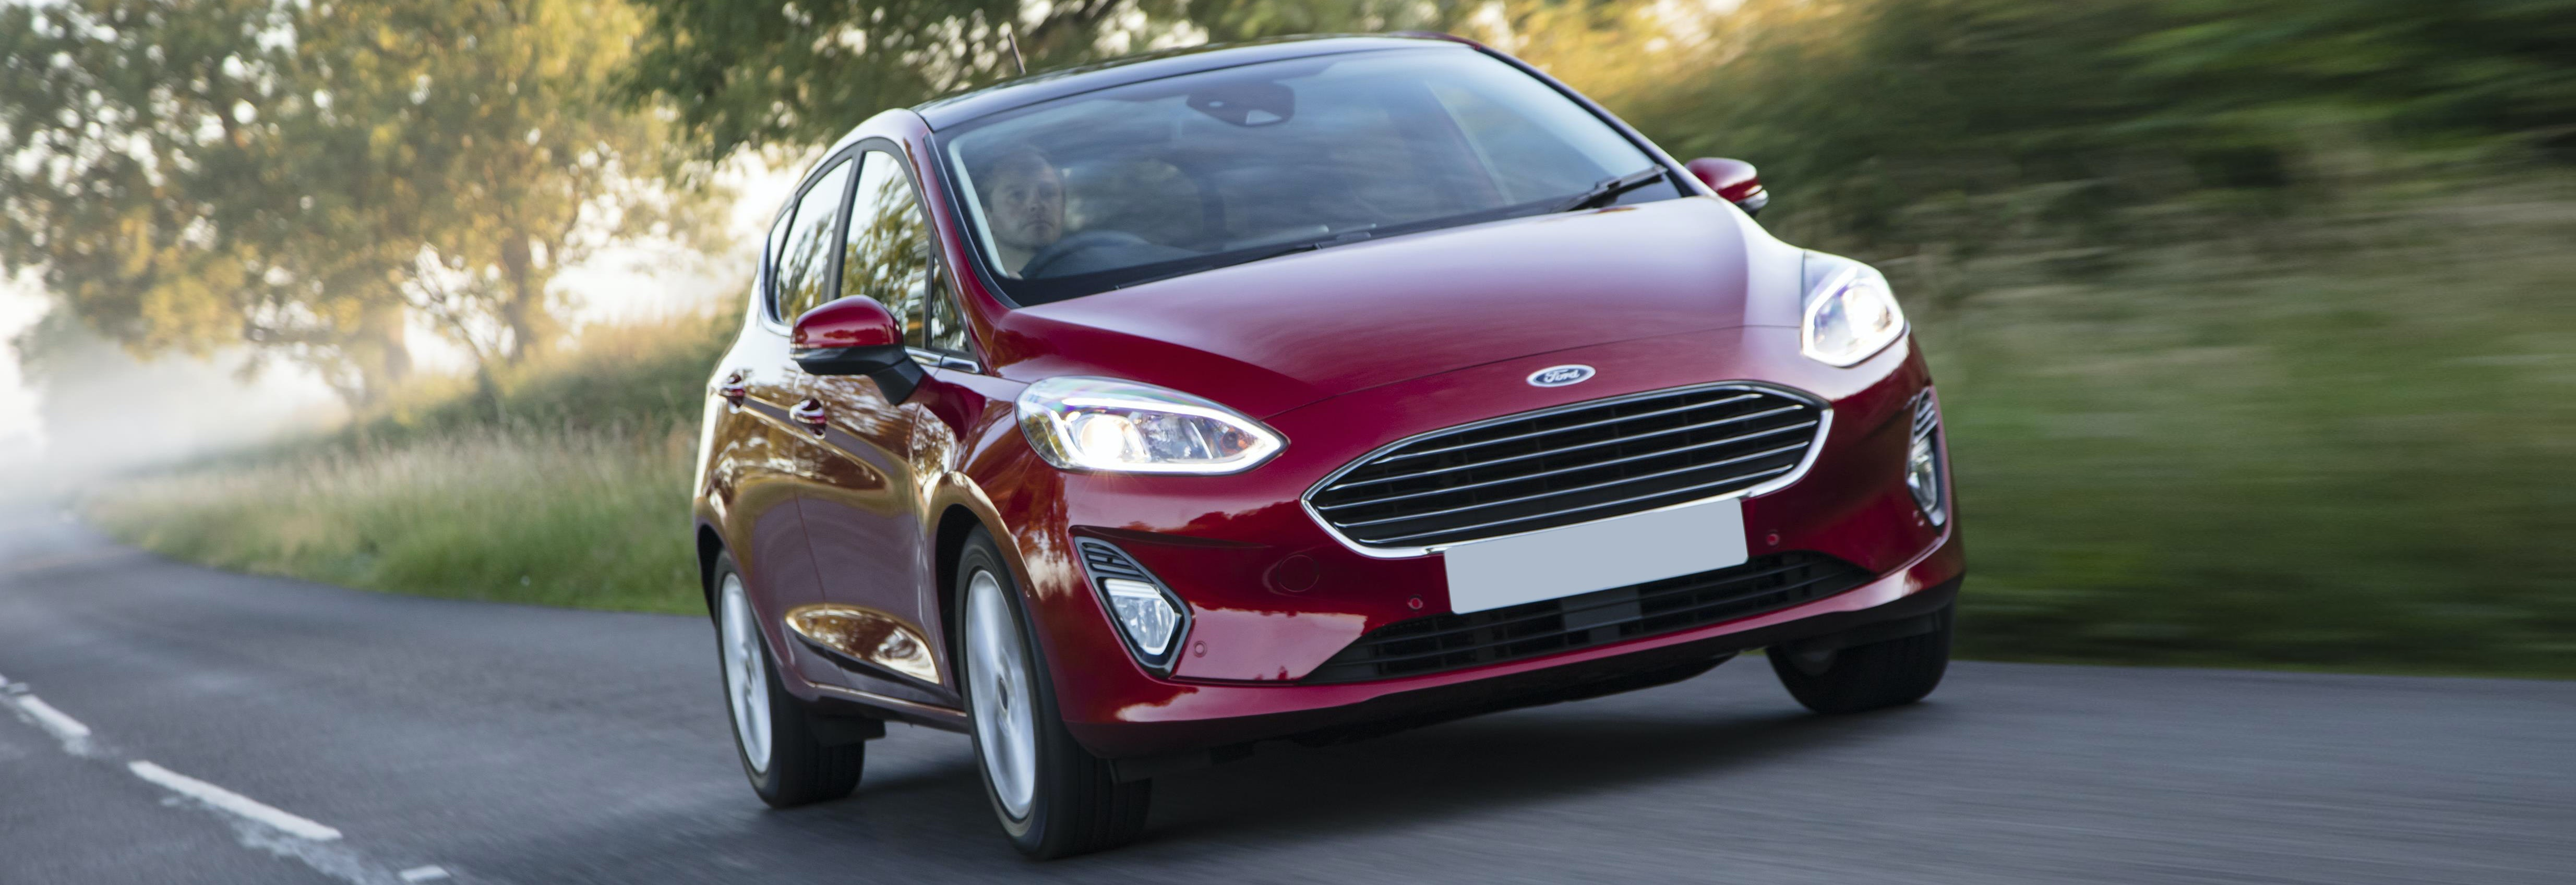 2018 ford fiesta red driving front